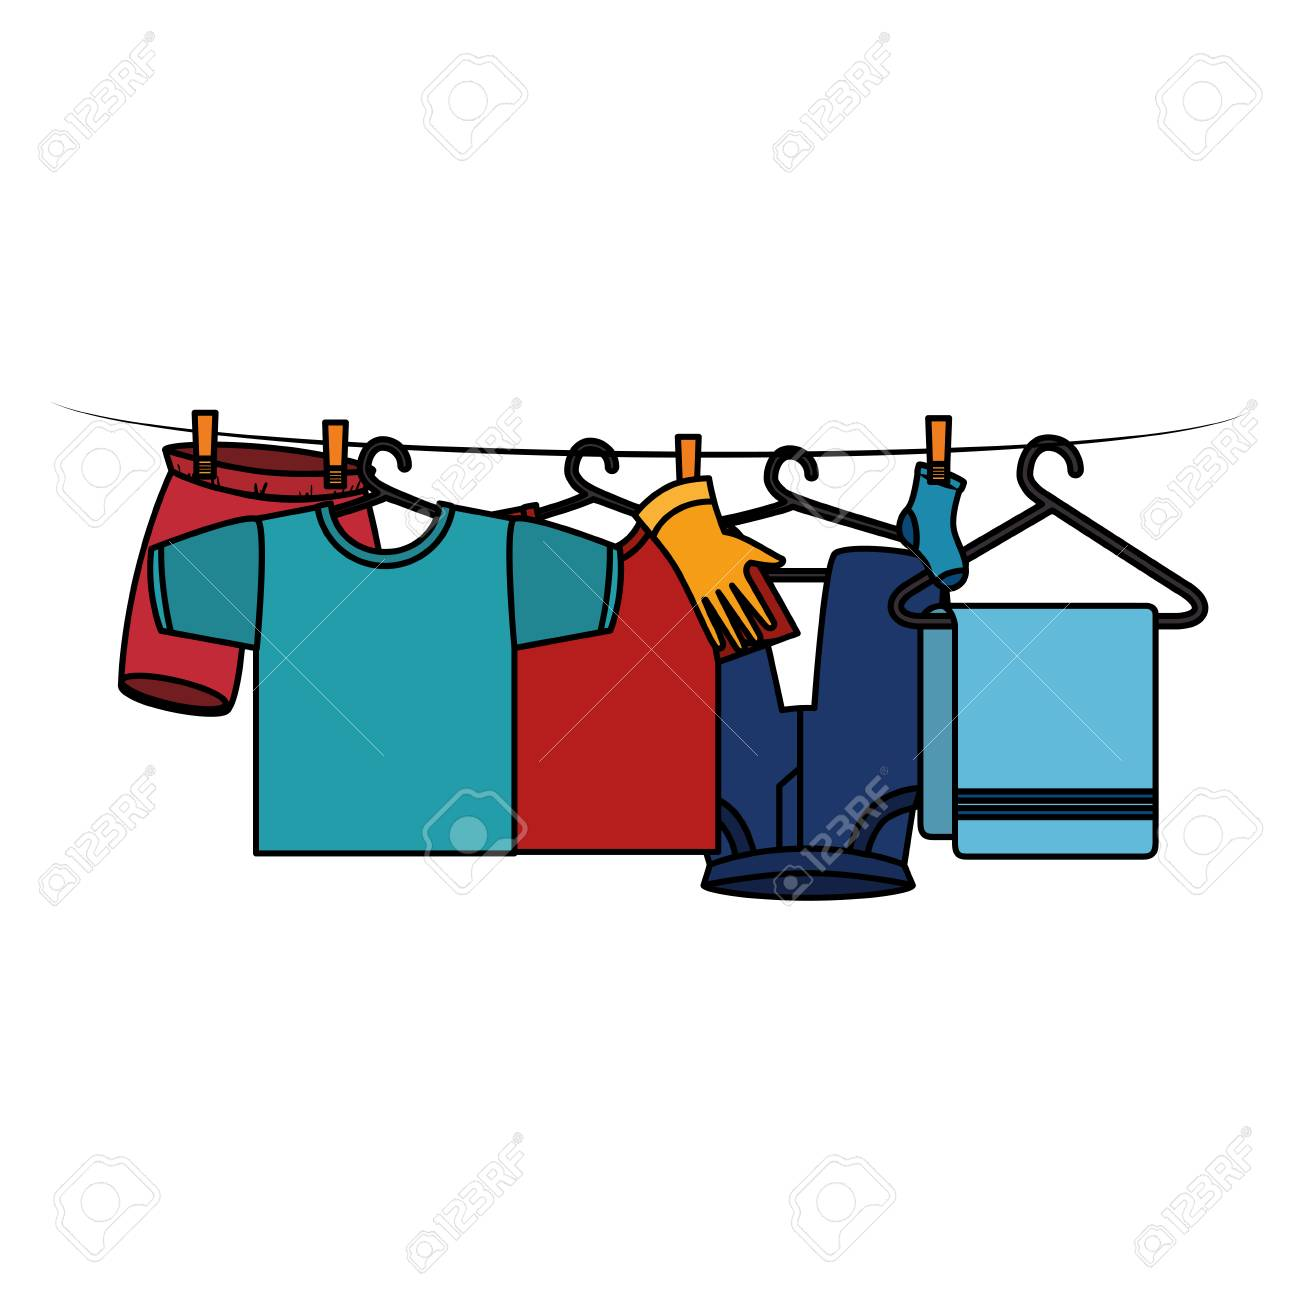 Clothes Drying On Wire Vector Illustration Design Royalty Free Clothing Dryer Wiring Diagram Stock 104046204